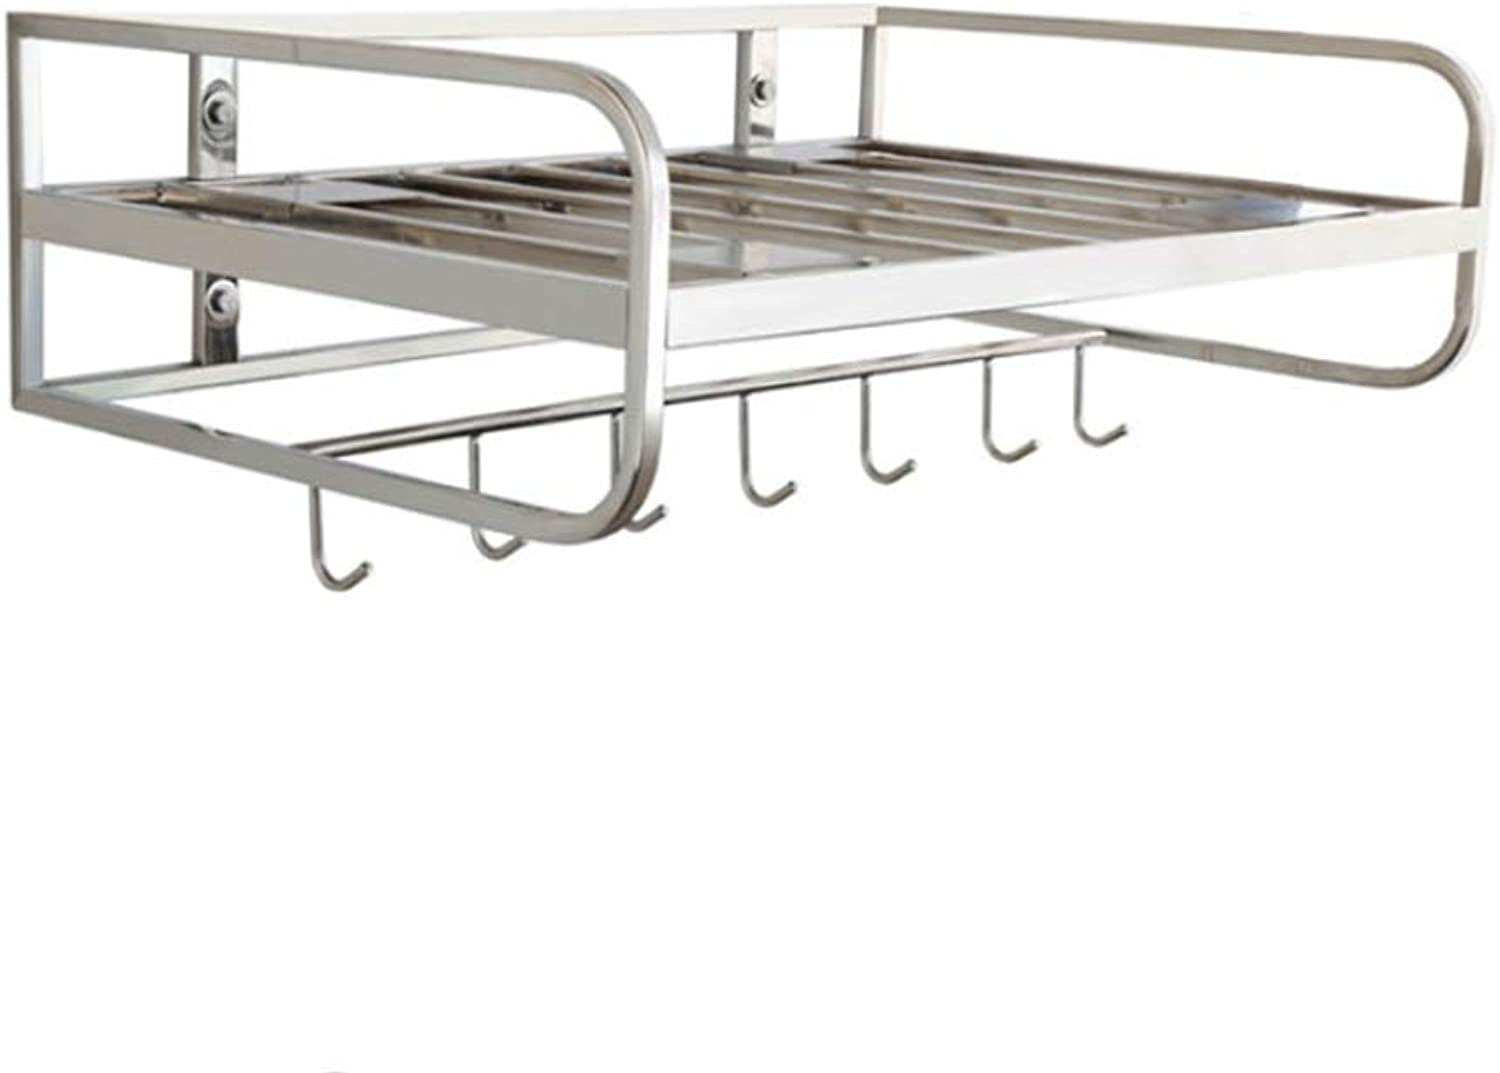 Kitchen Shelf Microwave Shelf Widened Super Load-Bearing Stainless Steel Wall-Mounted Kitchen Accessories with Hook Single Layer 21.6  4.714.9 Inches